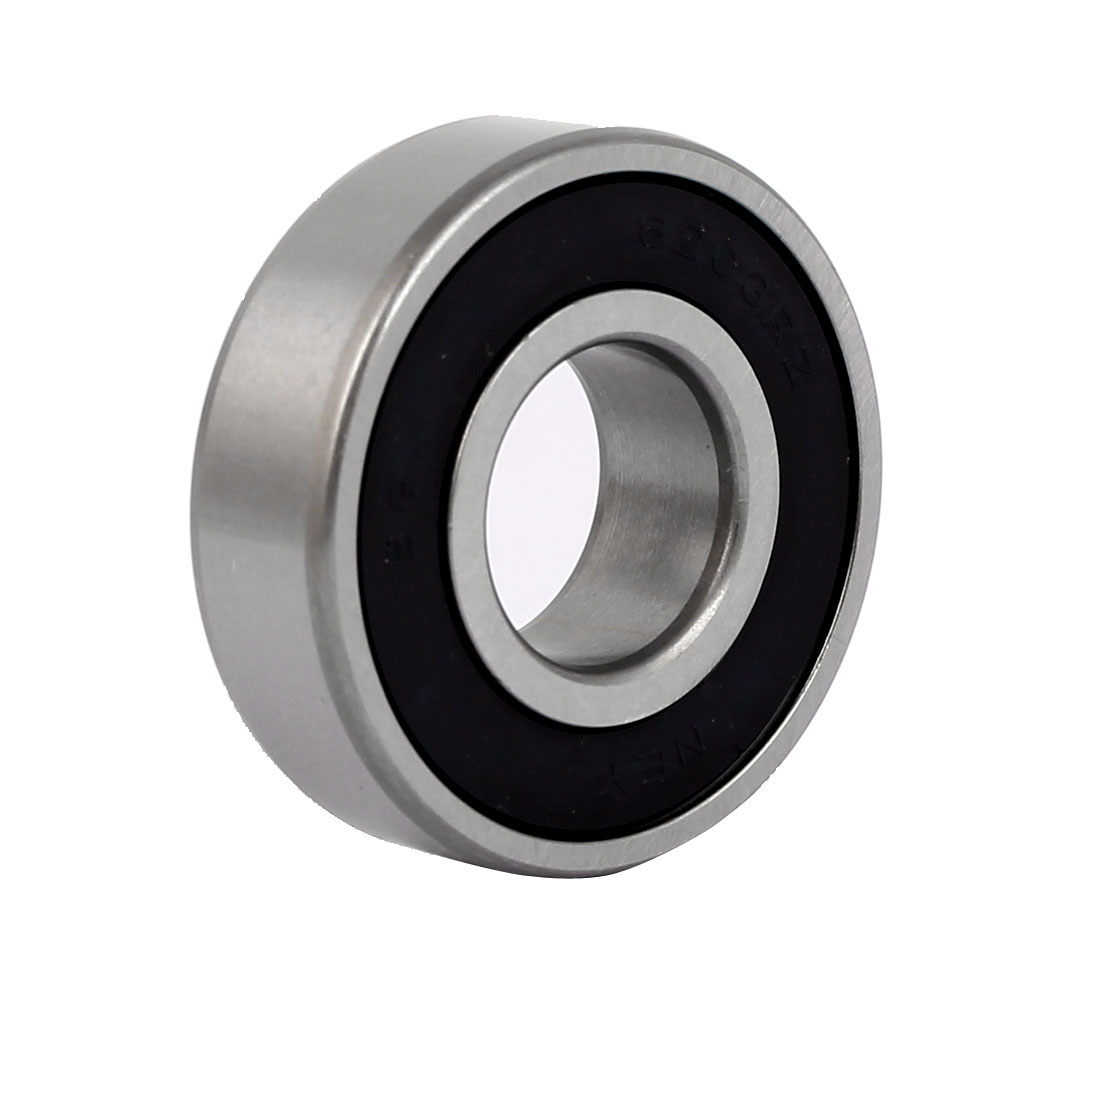 RZ6203 Double Shielded Deep Groove Ball Bearing 40mmx17mmx12mm